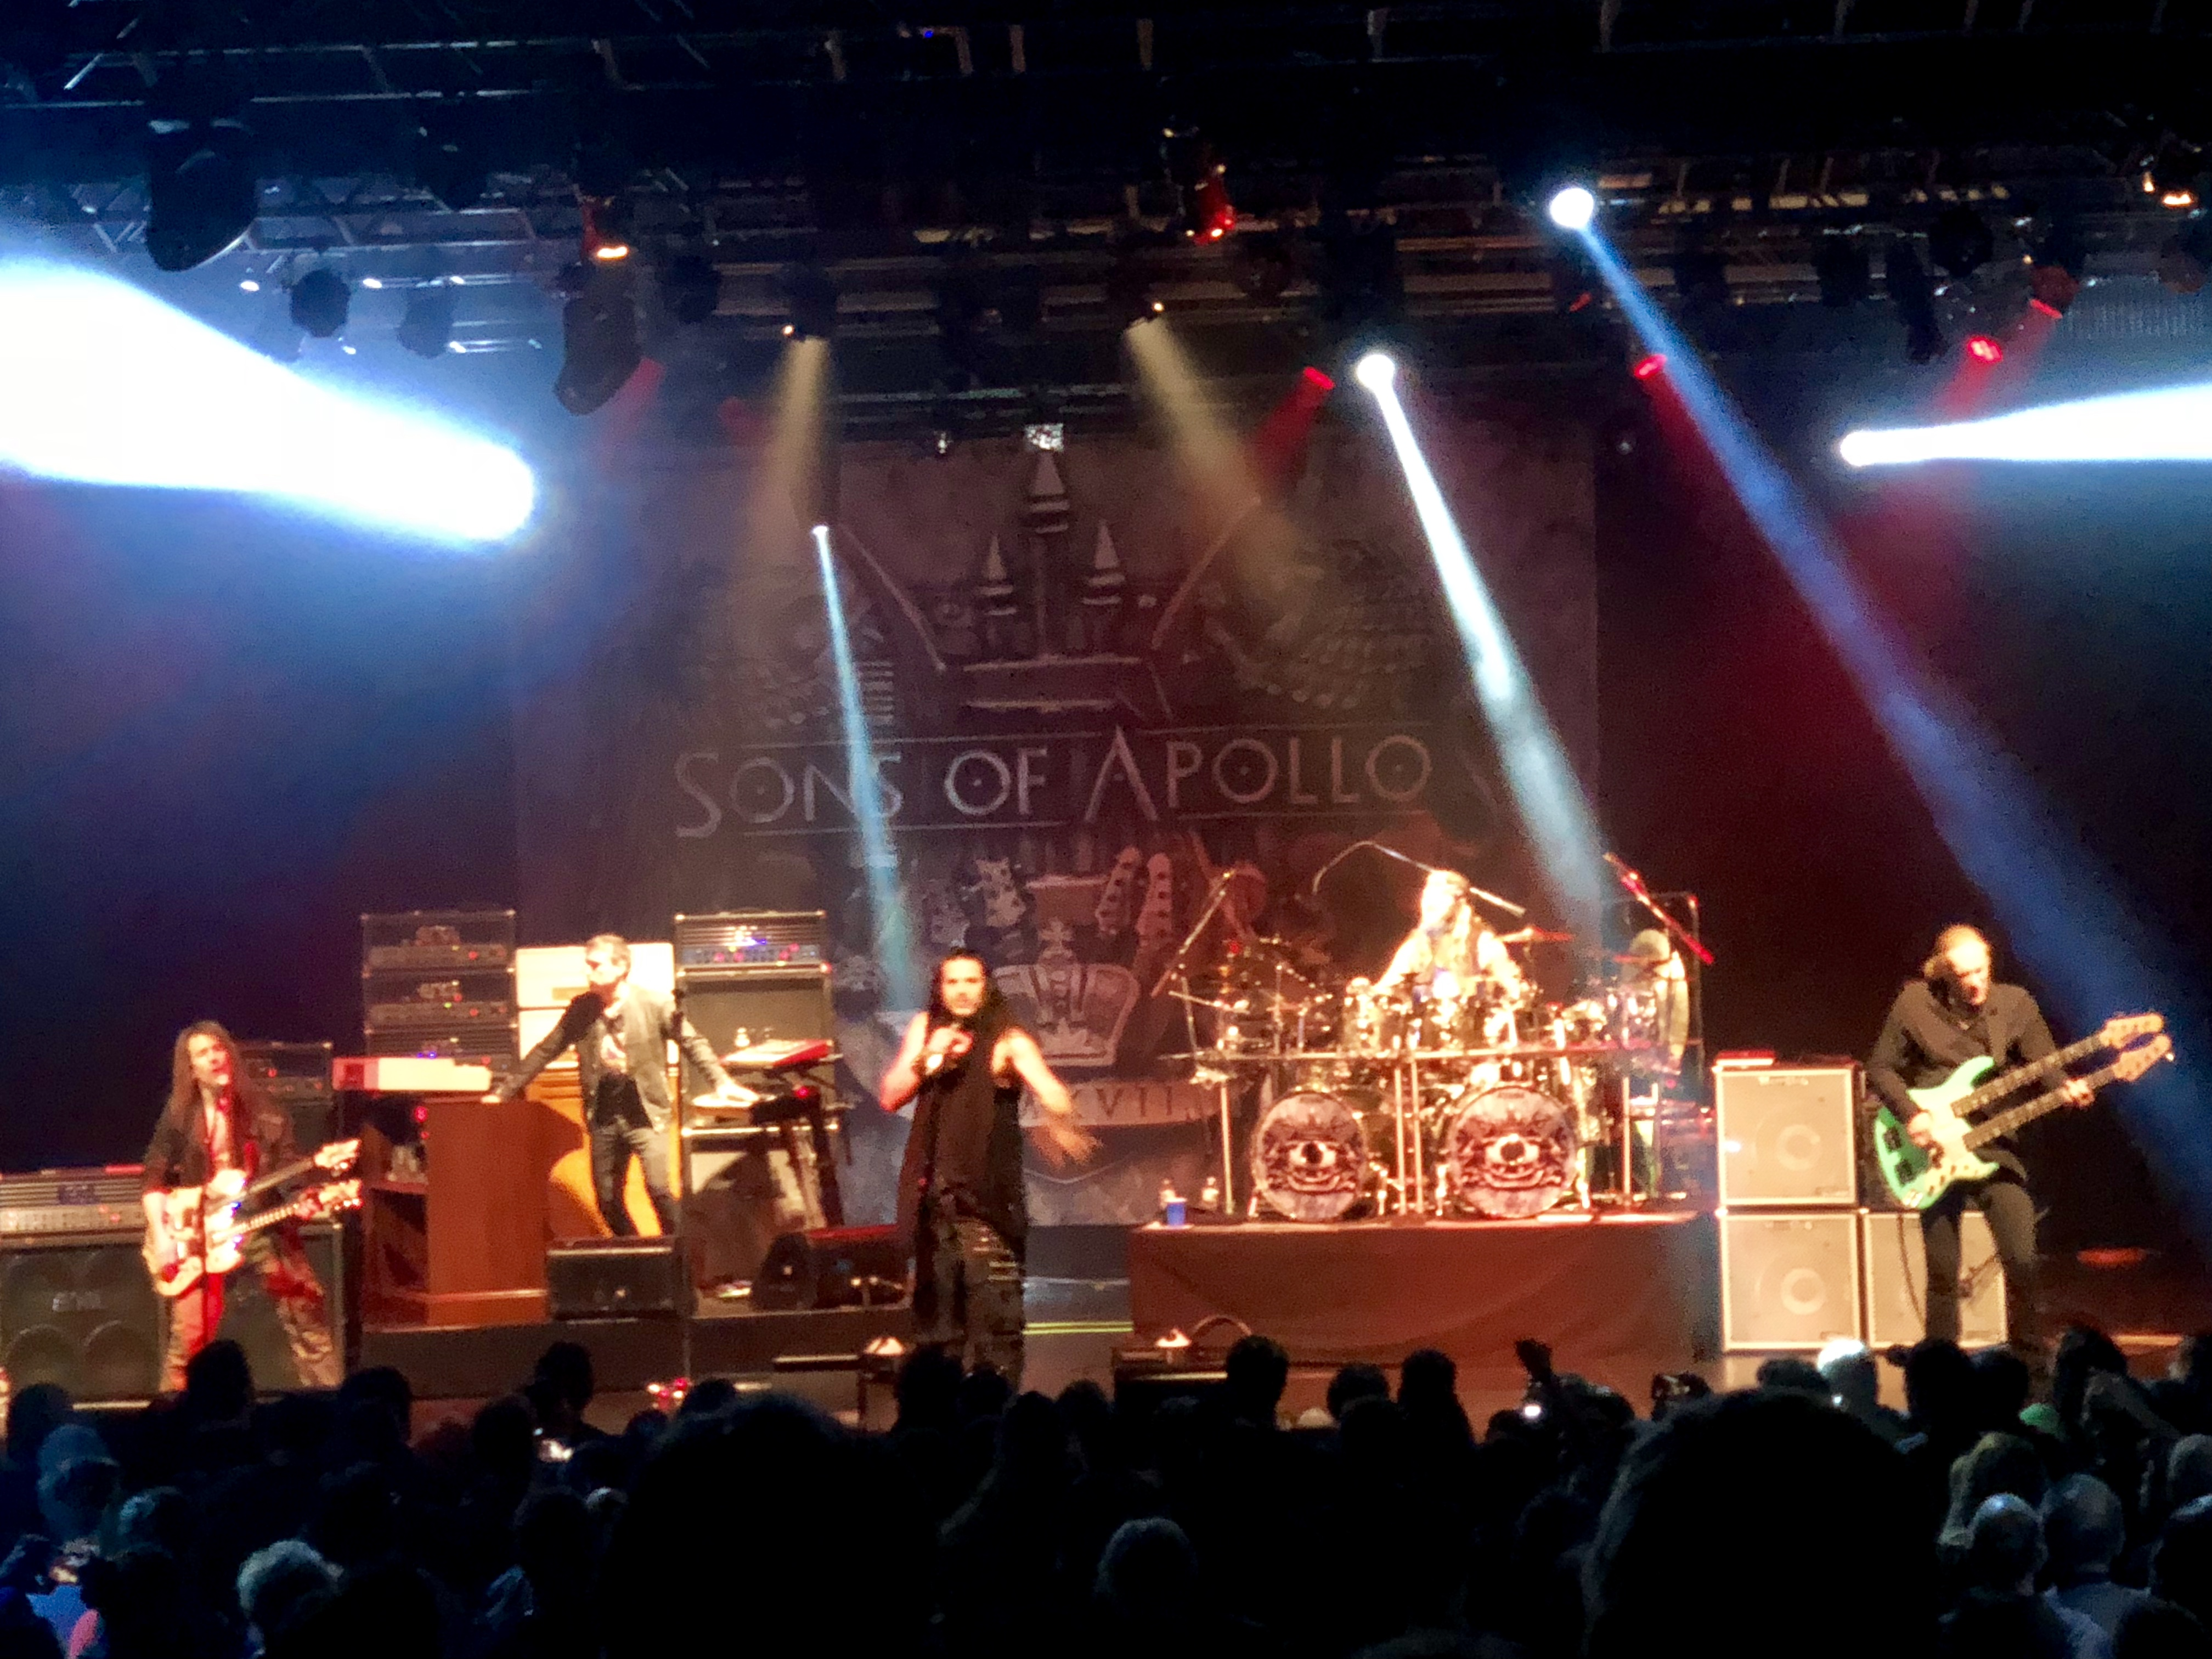 Sons Of Apollo performing live